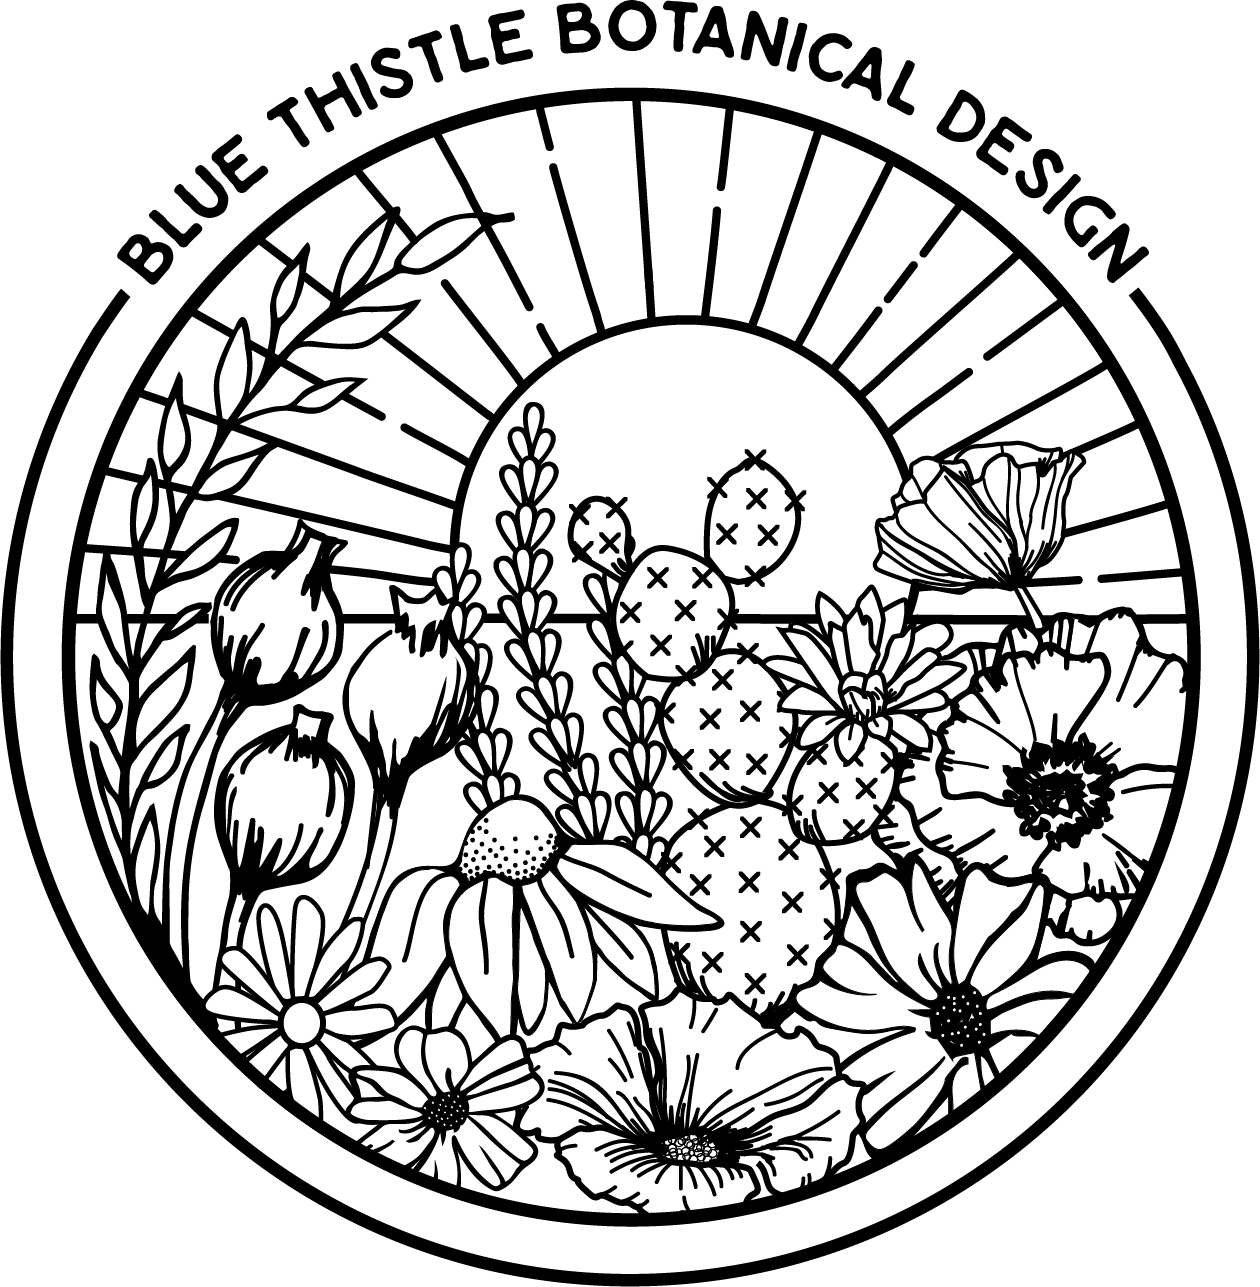 Blue Thistle Botanical